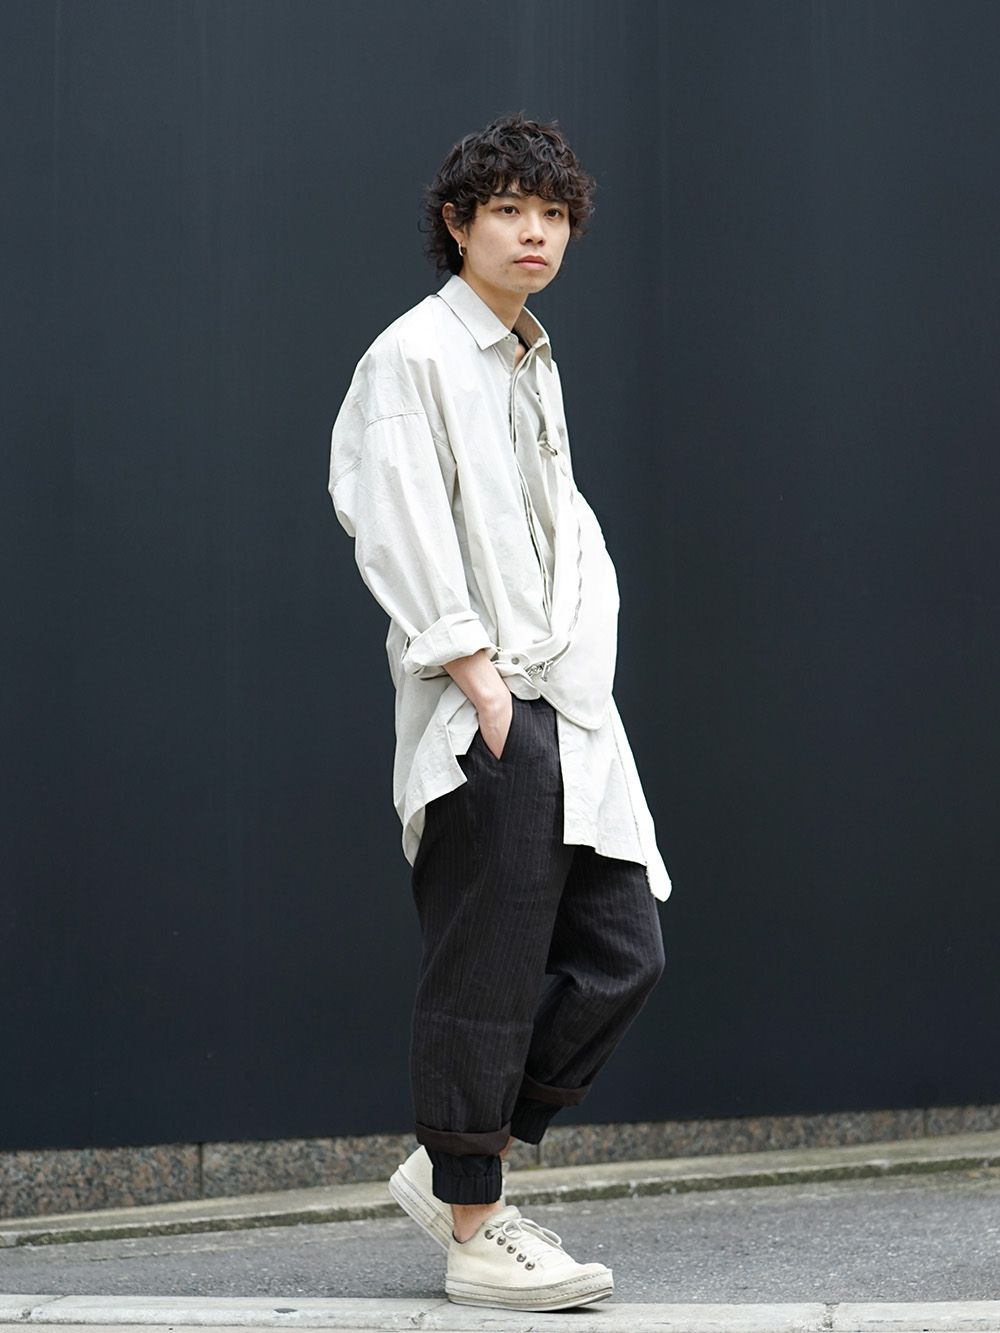 ZIGGY CHEN Relaxed Atmosphere Style - 3-005